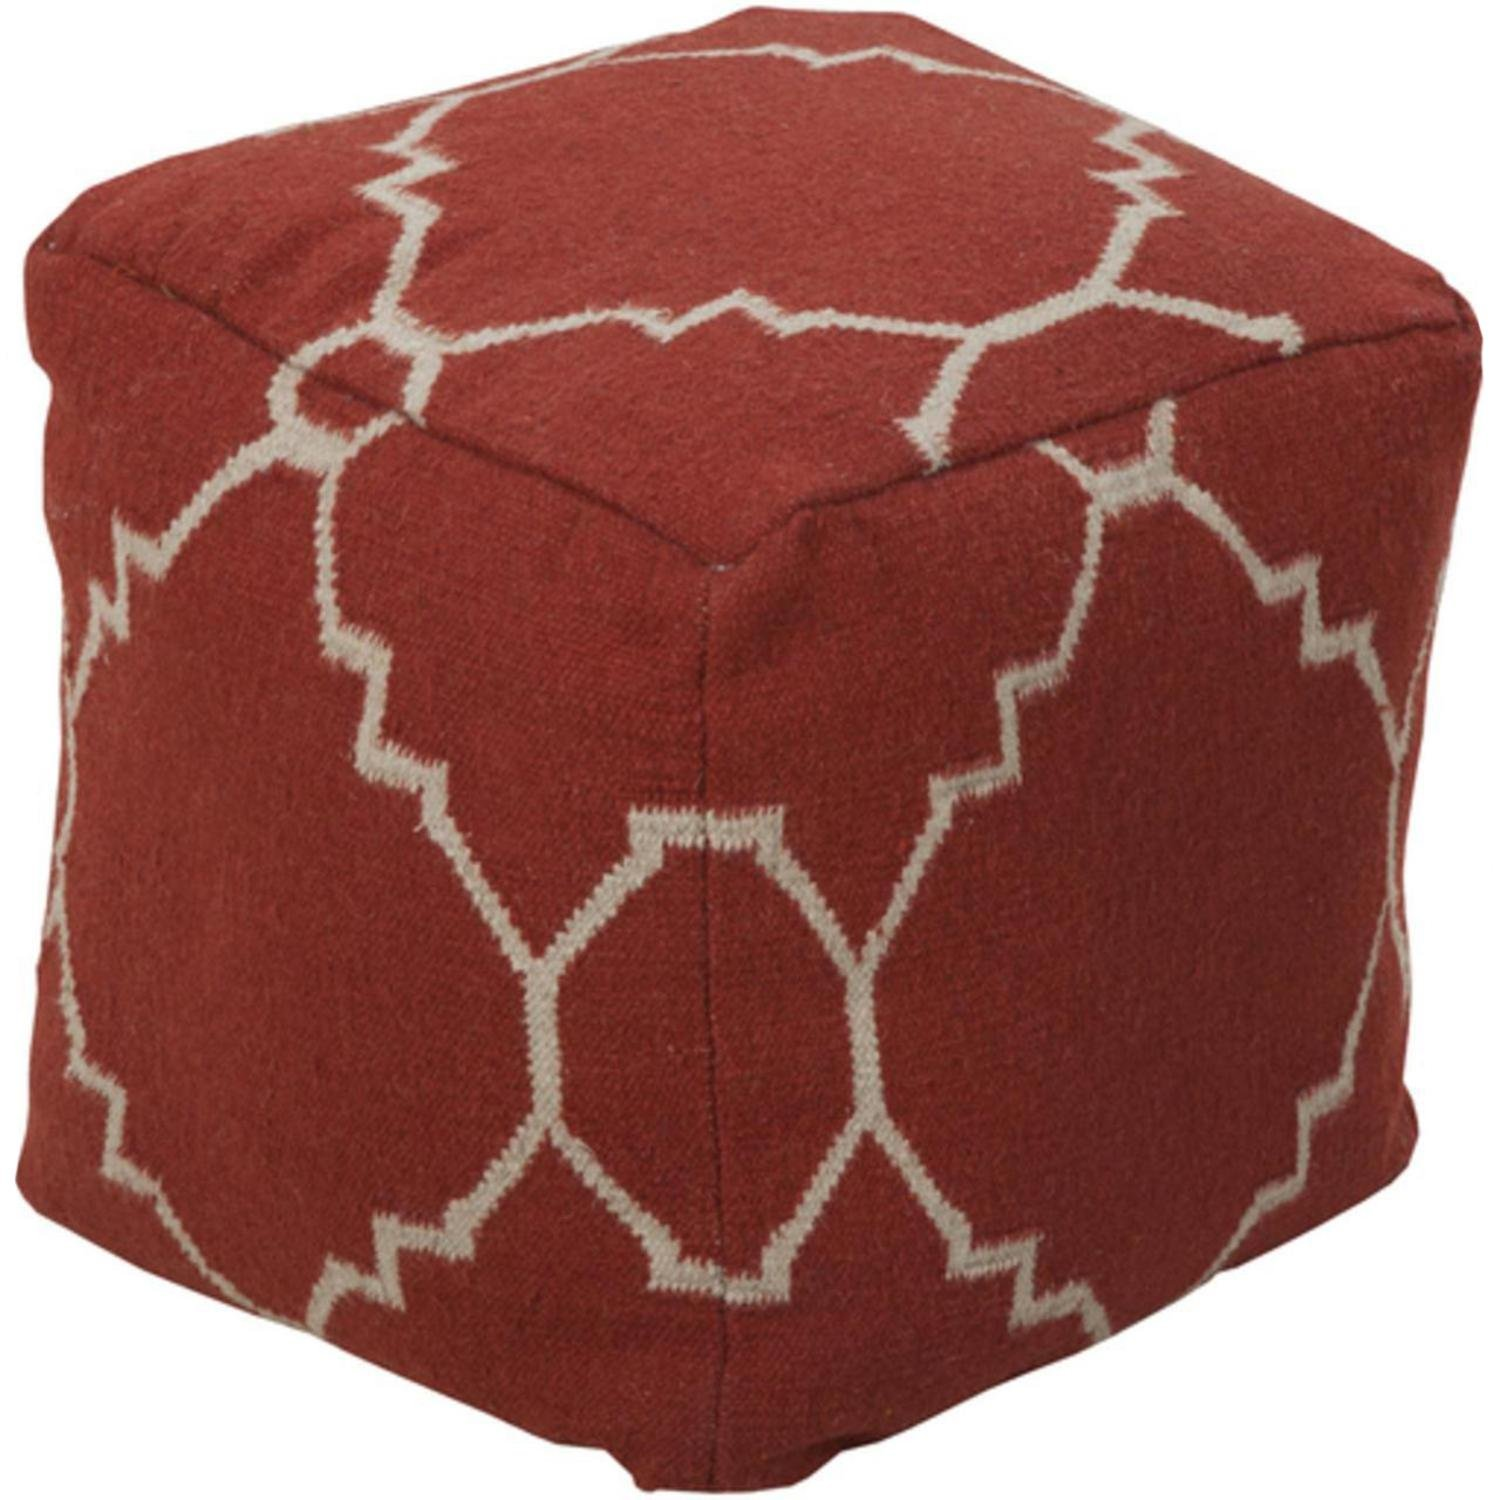 18'' Cinnamon Red and Ivory Geometric Shape Square Wool Pouf Ottoman by Diva At Home (Image #1)